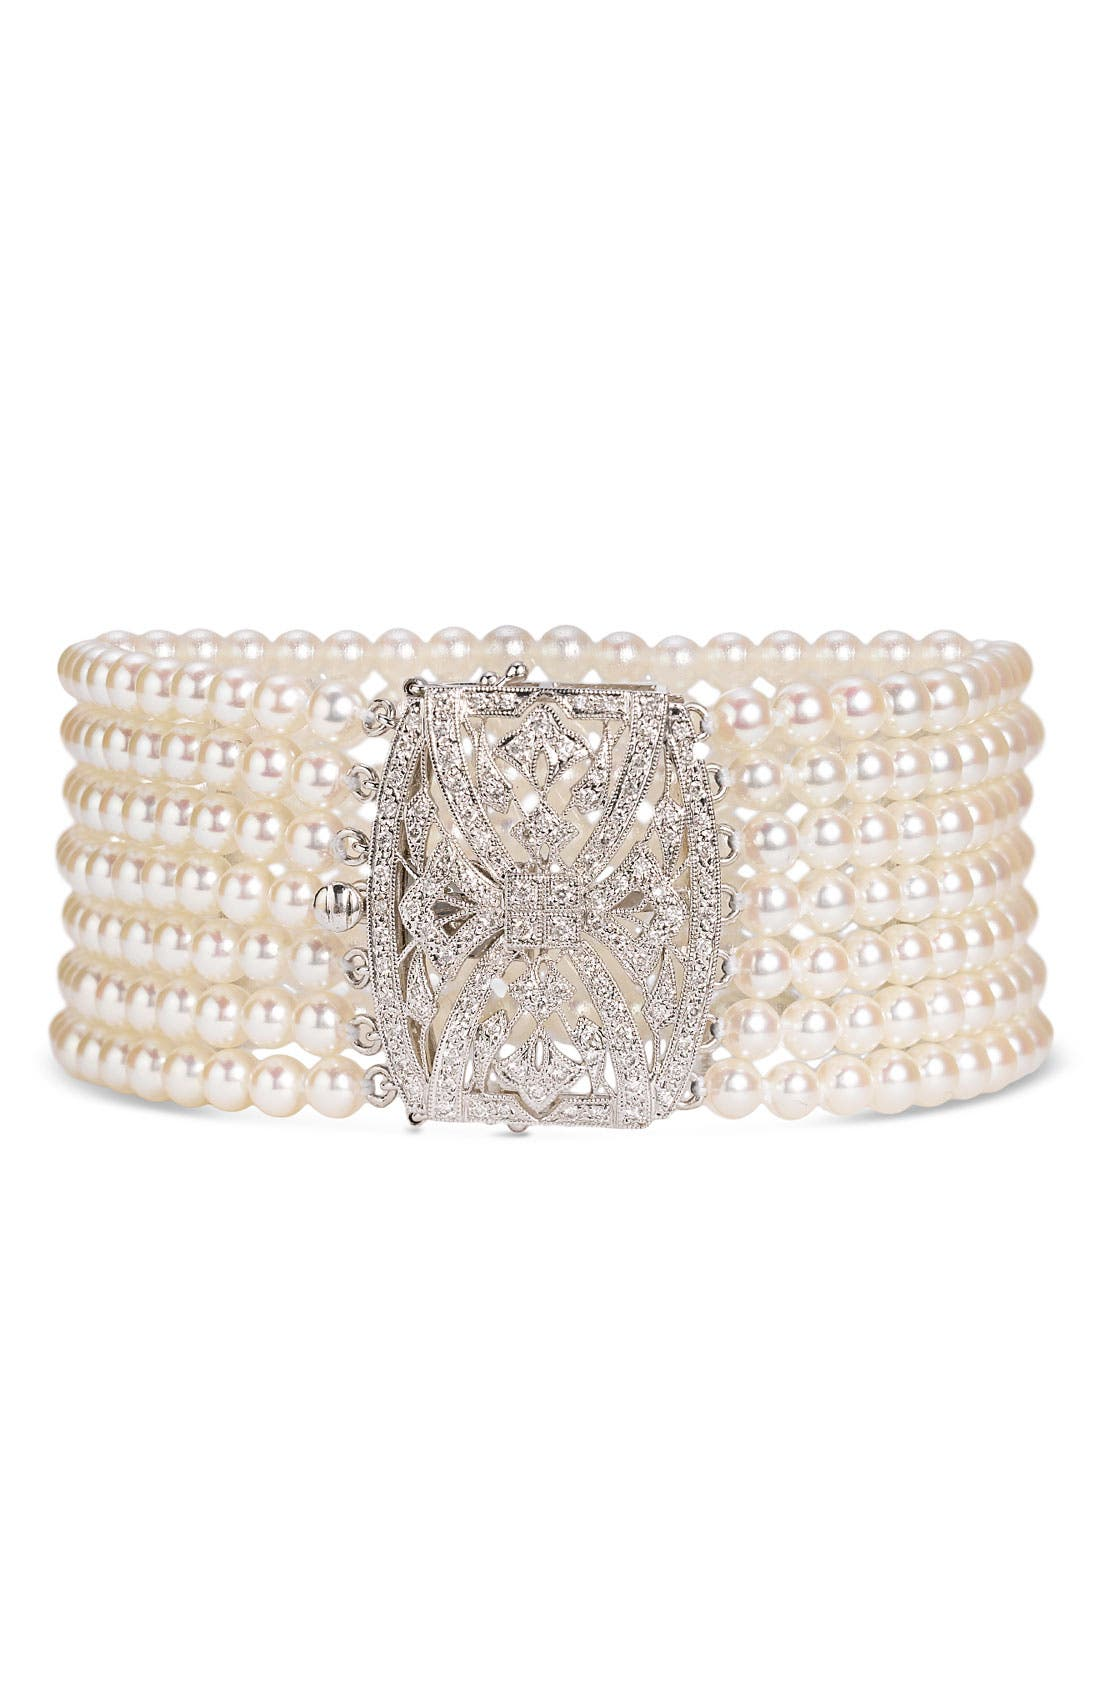 Alternate Image 1 Selected - Mastoloni 7-Strand Pearl & Diamond Clasp Bracelet